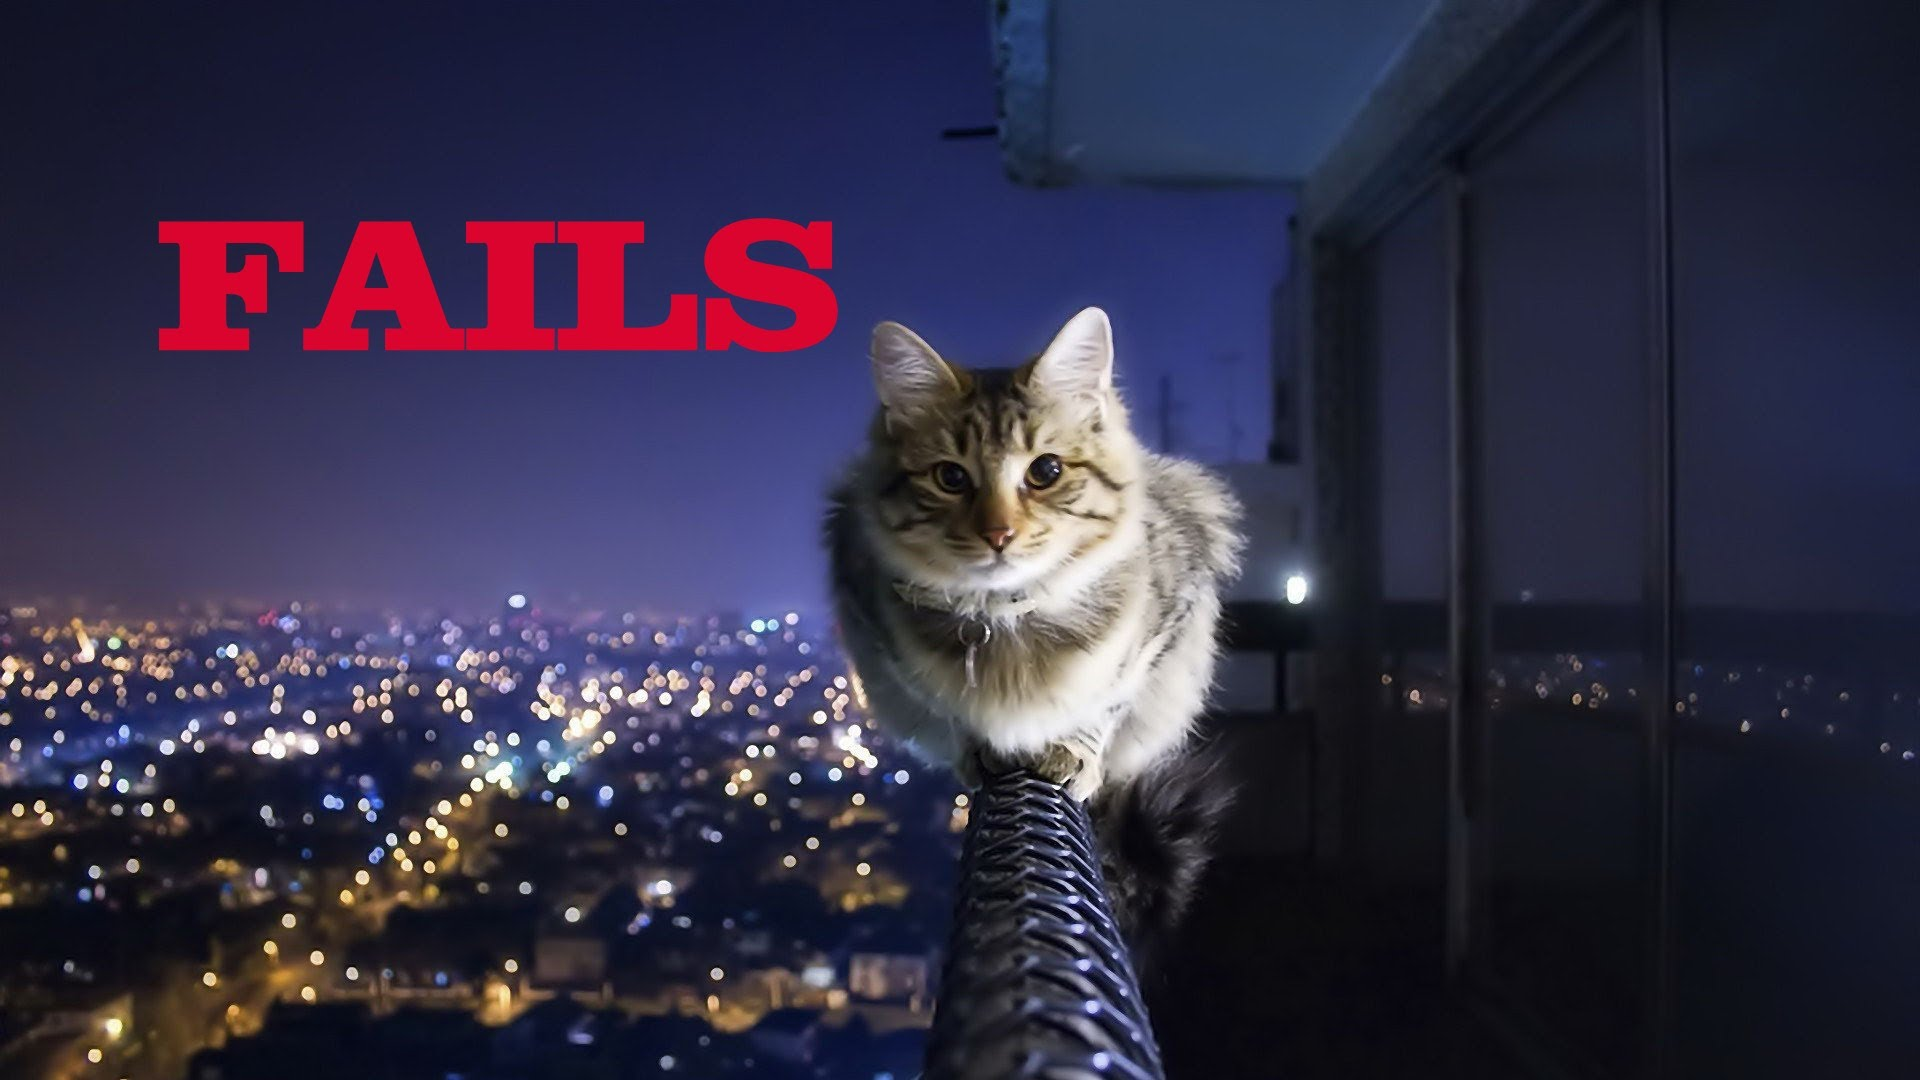 epic funny cat fails 1 cool wallpaper - funnypicture